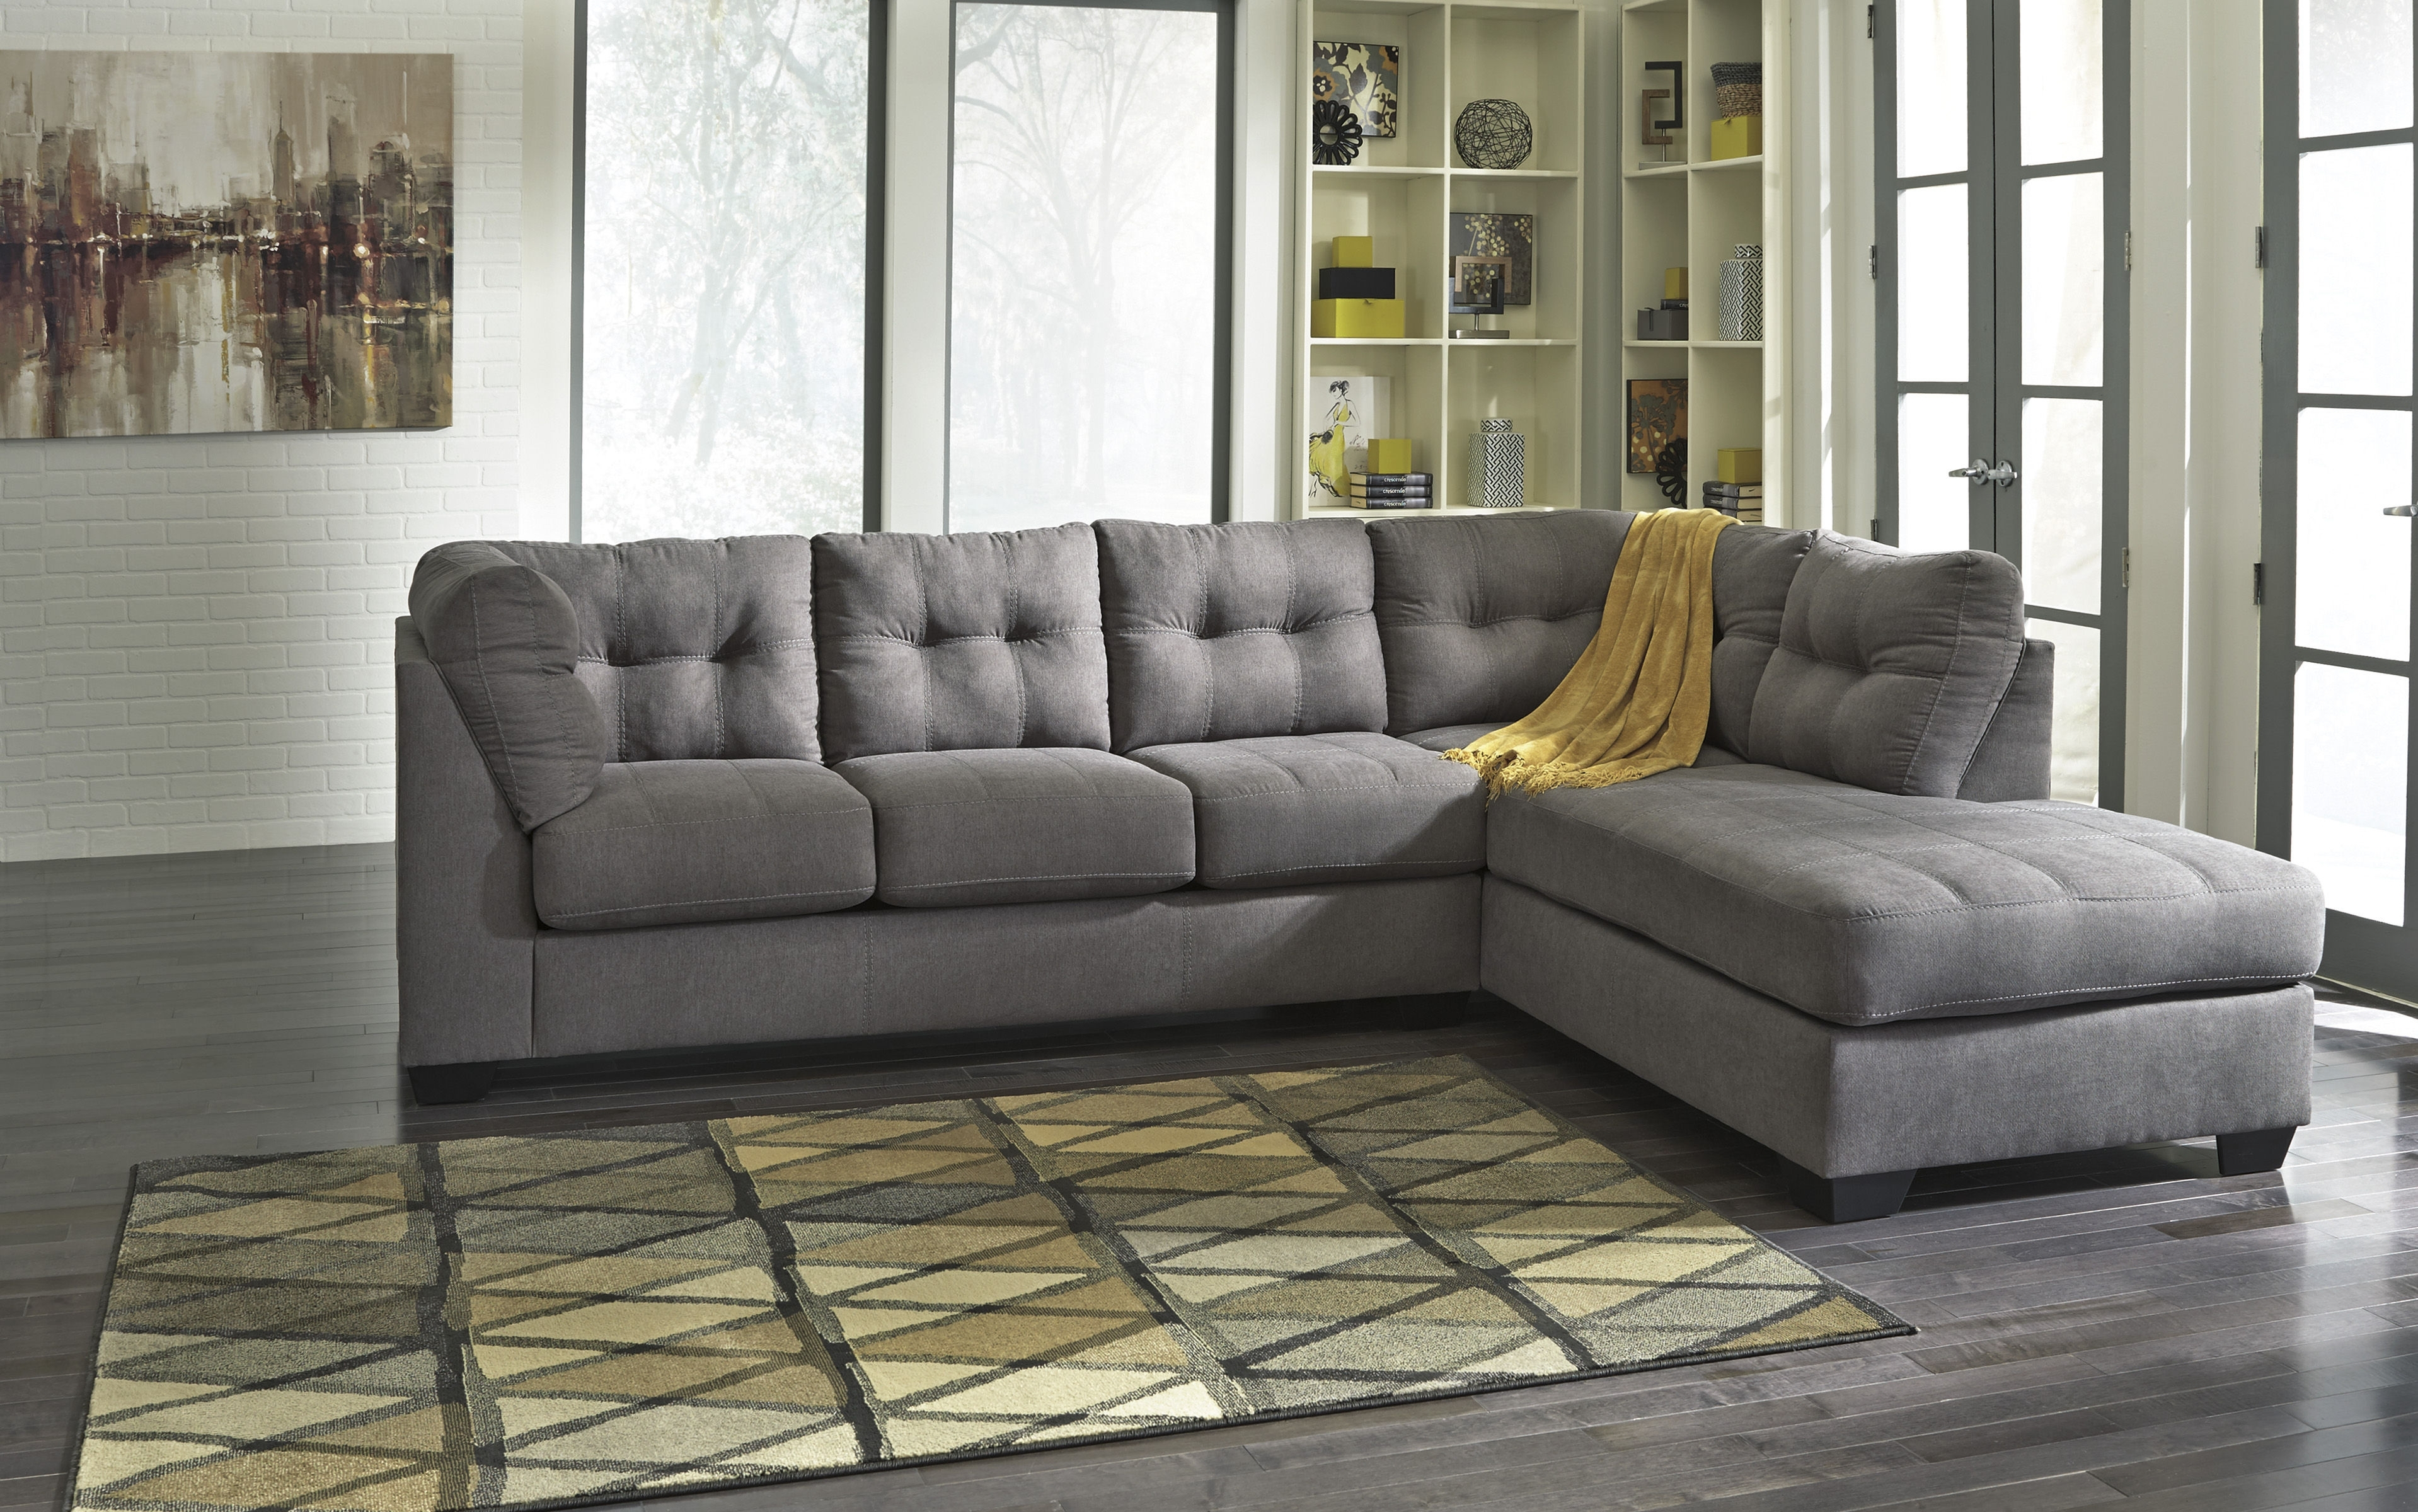 Benchcraft Products | The Classy Home pertaining to Cosmos Grey 2 Piece Sectionals With Raf Chaise (Image 3 of 30)